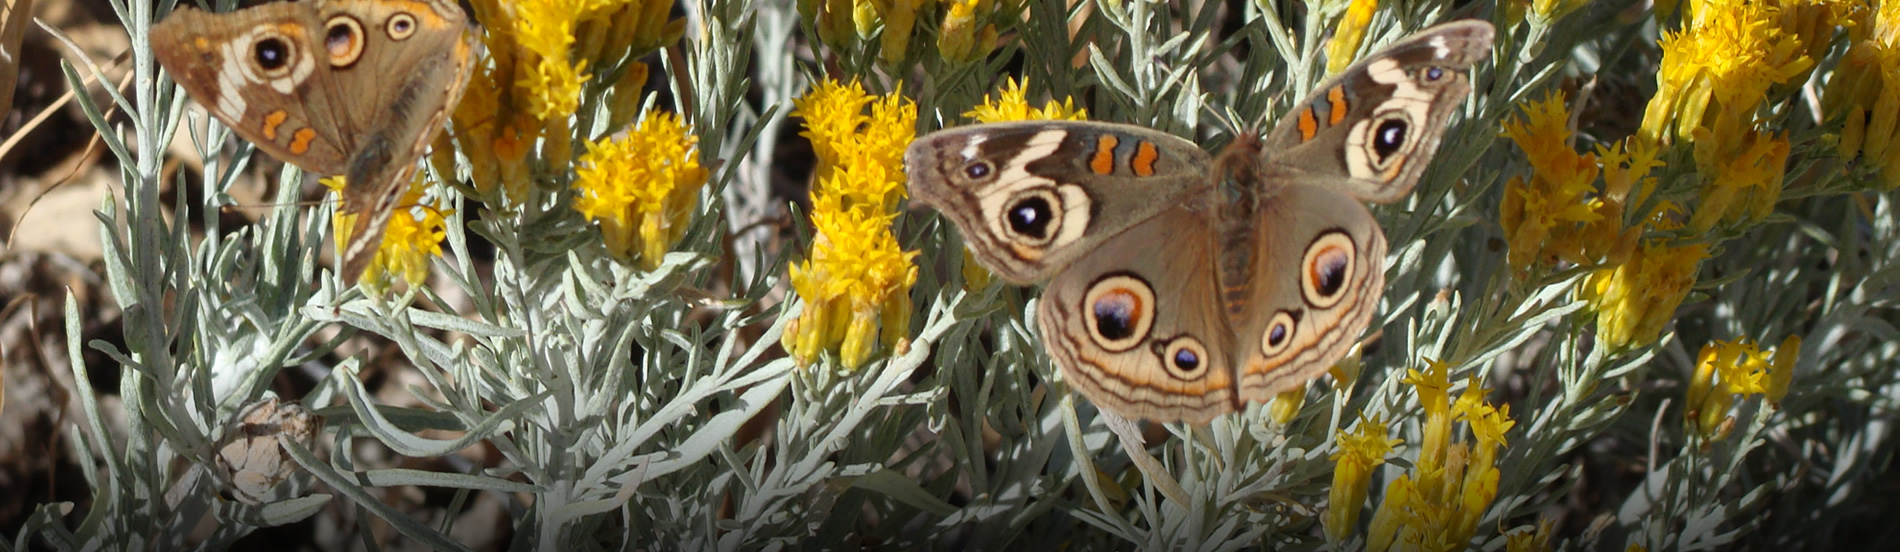 Buckeye Butterflies on Rabbit Brush